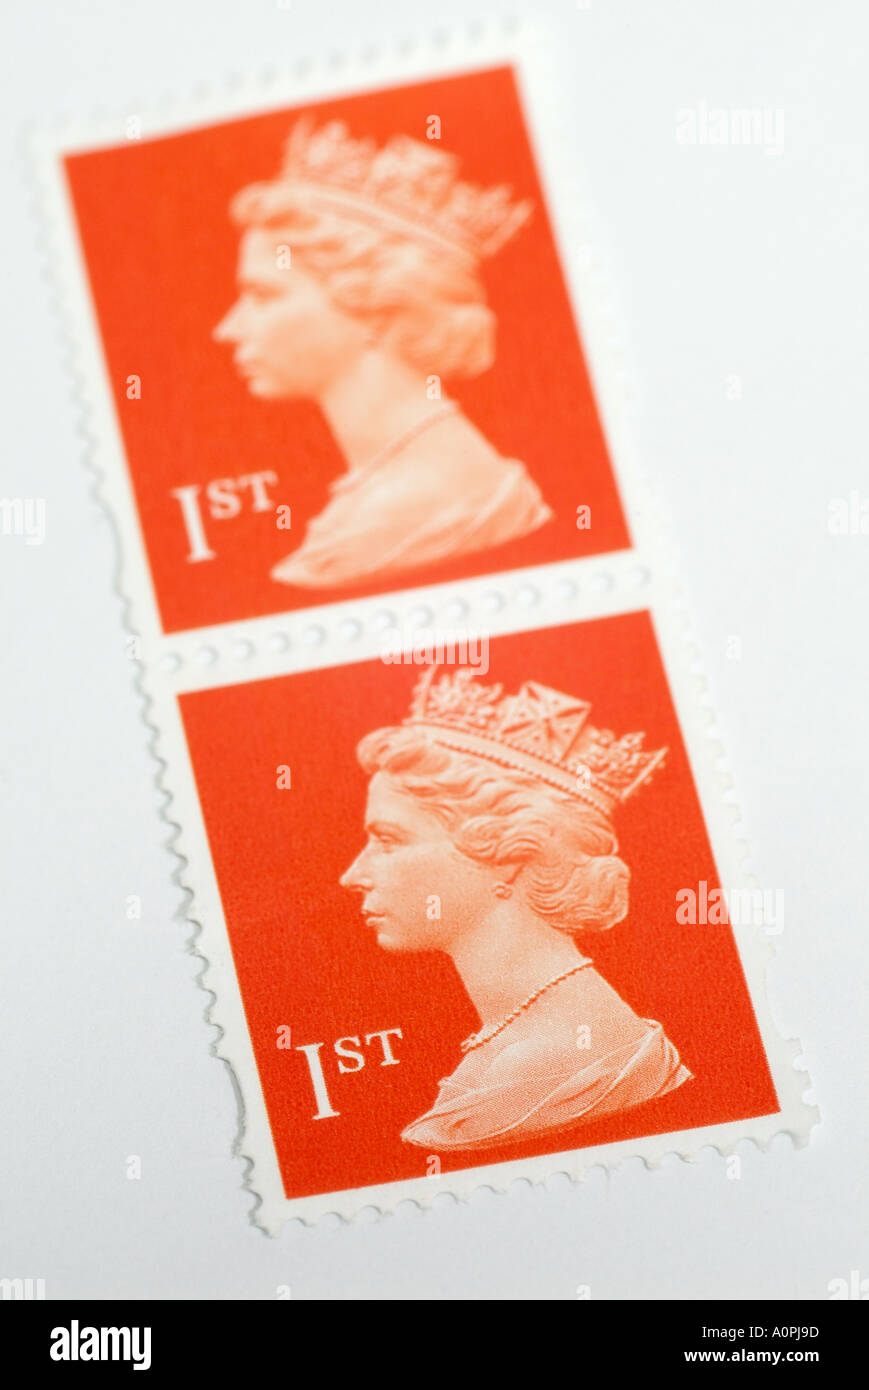 United Kingdom First Class Postage Stamps - Stock Image